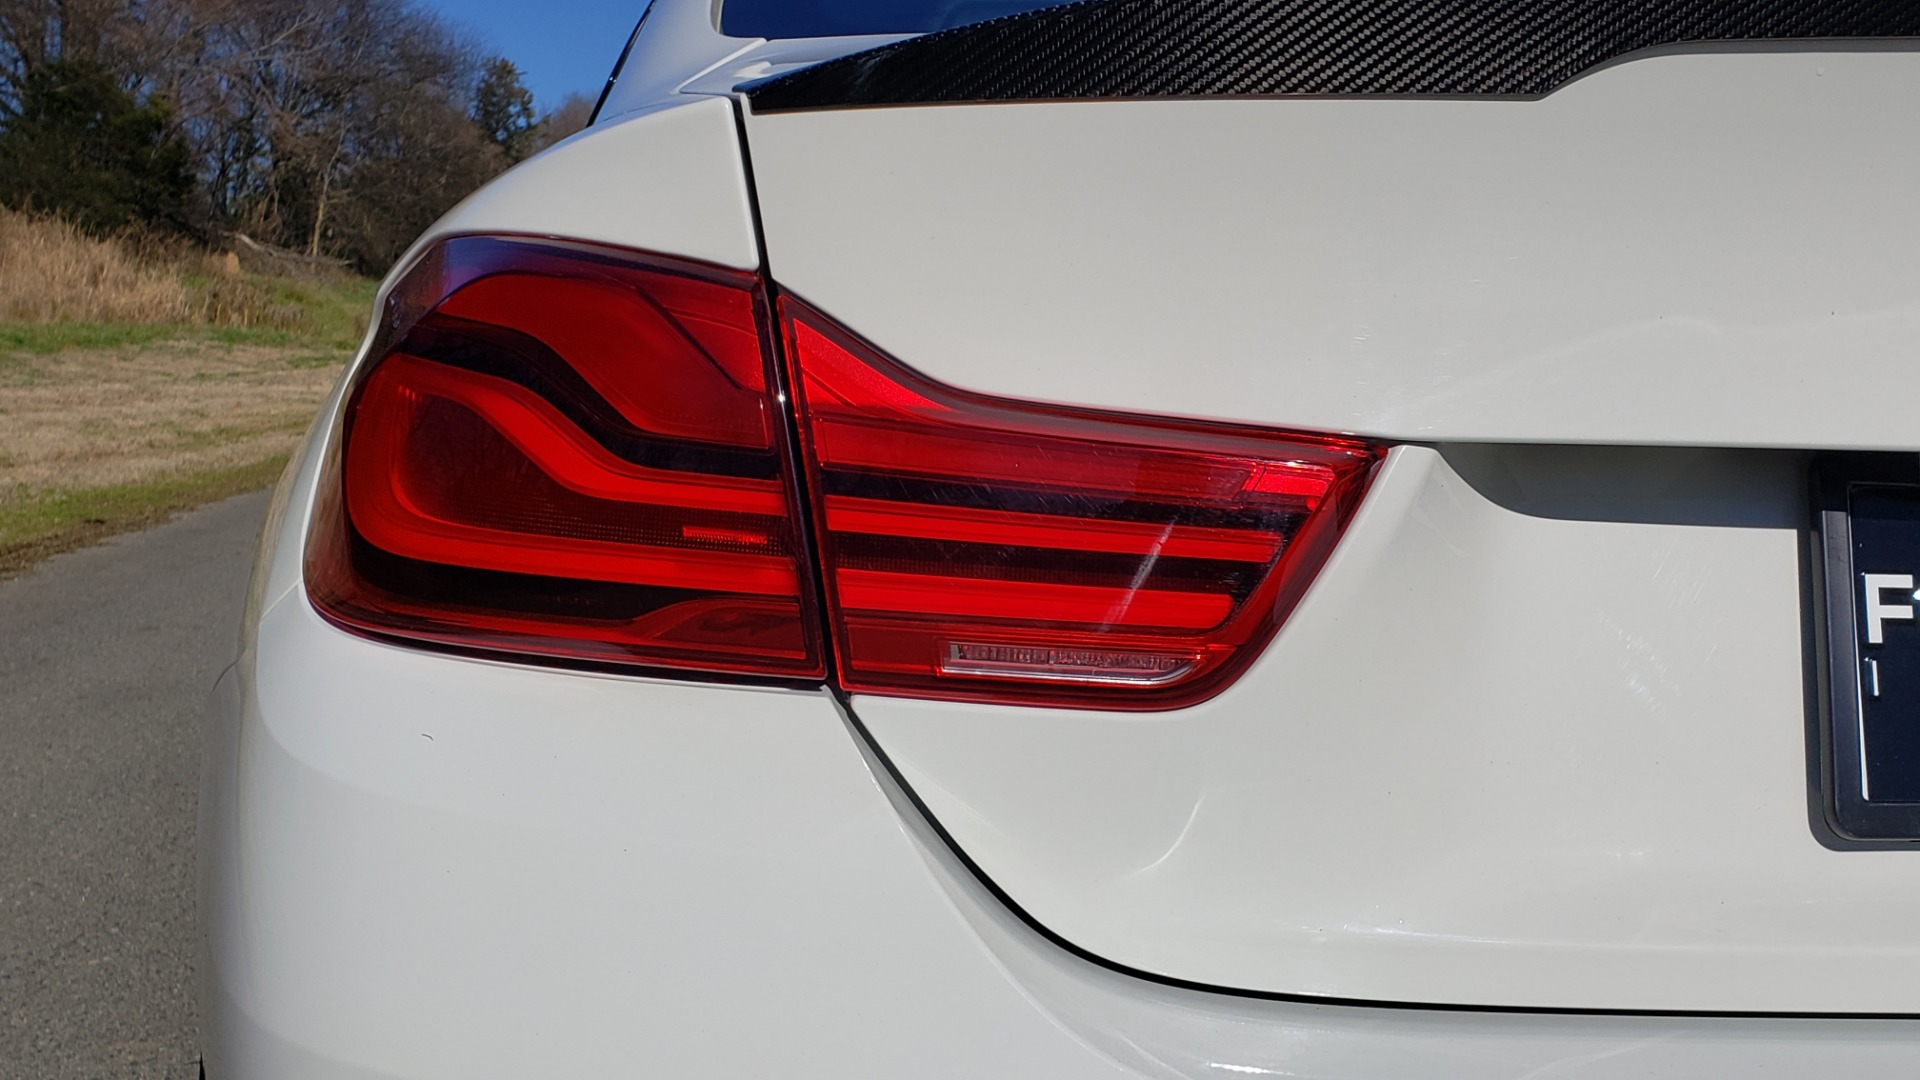 Used 2018 BMW M4 COMP PKG / EXEC / M-DRIVER / PARK CNTRL / ACTIVE BLIND SPOT for sale Sold at Formula Imports in Charlotte NC 28227 28